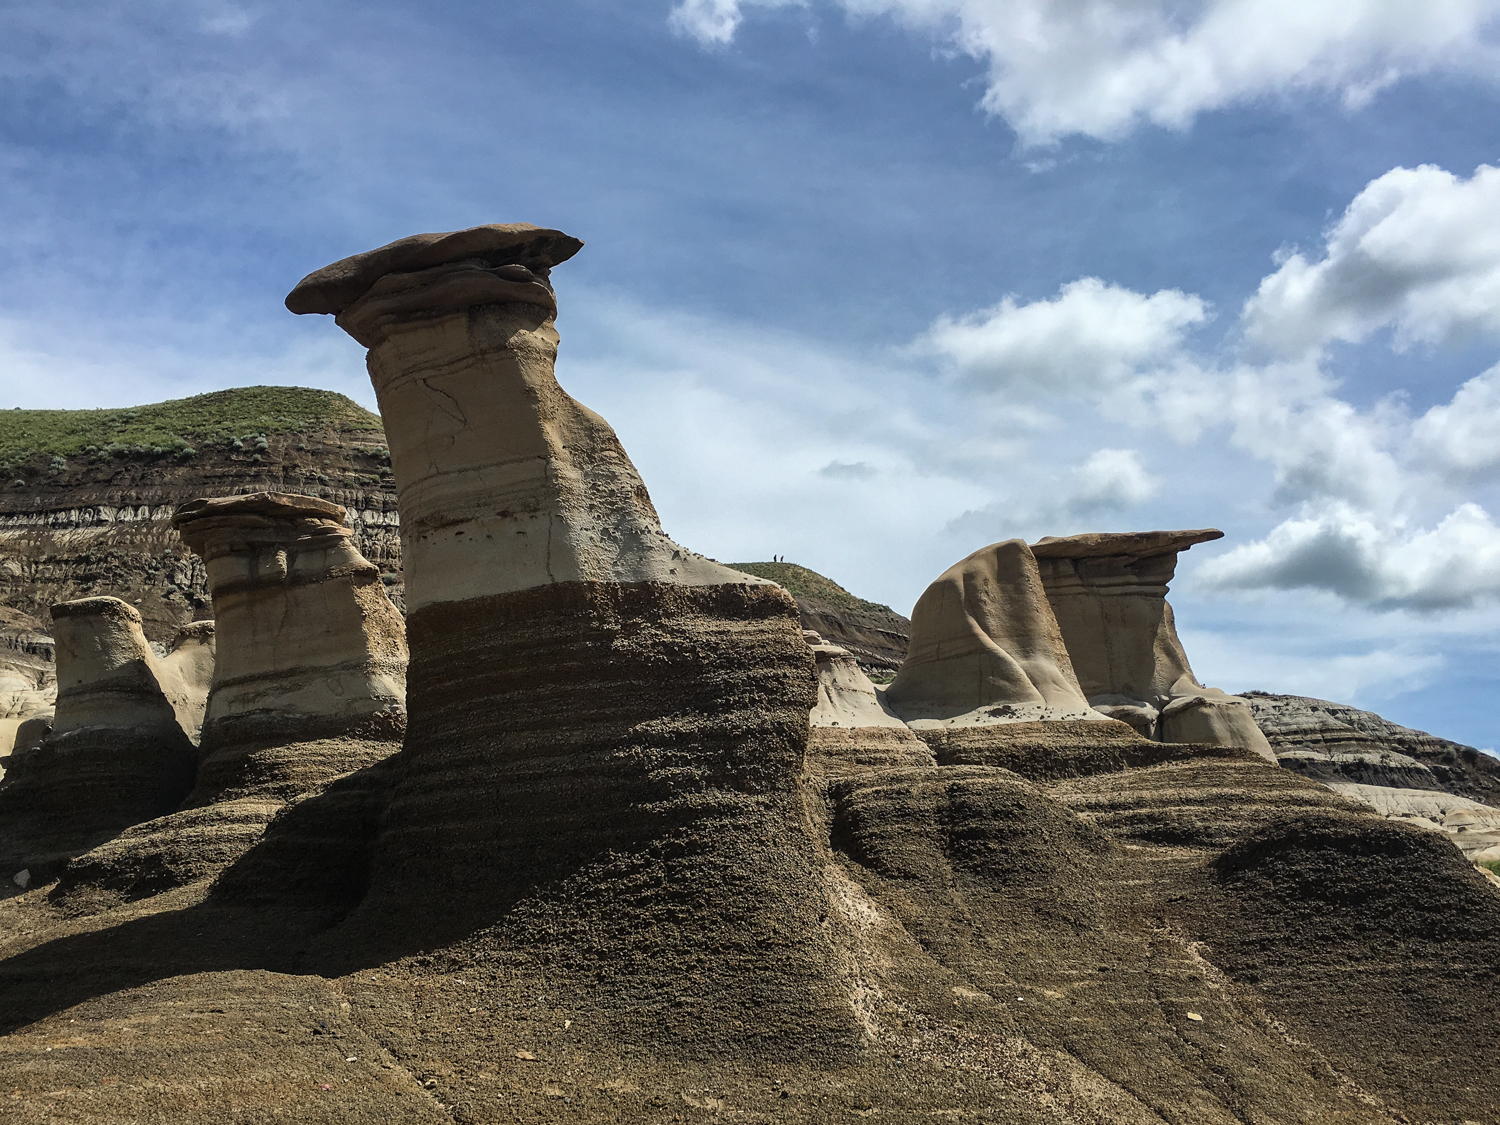 The hoodoos, made of sand and clay. The capstone protects the base, resulting in their awesome formation.